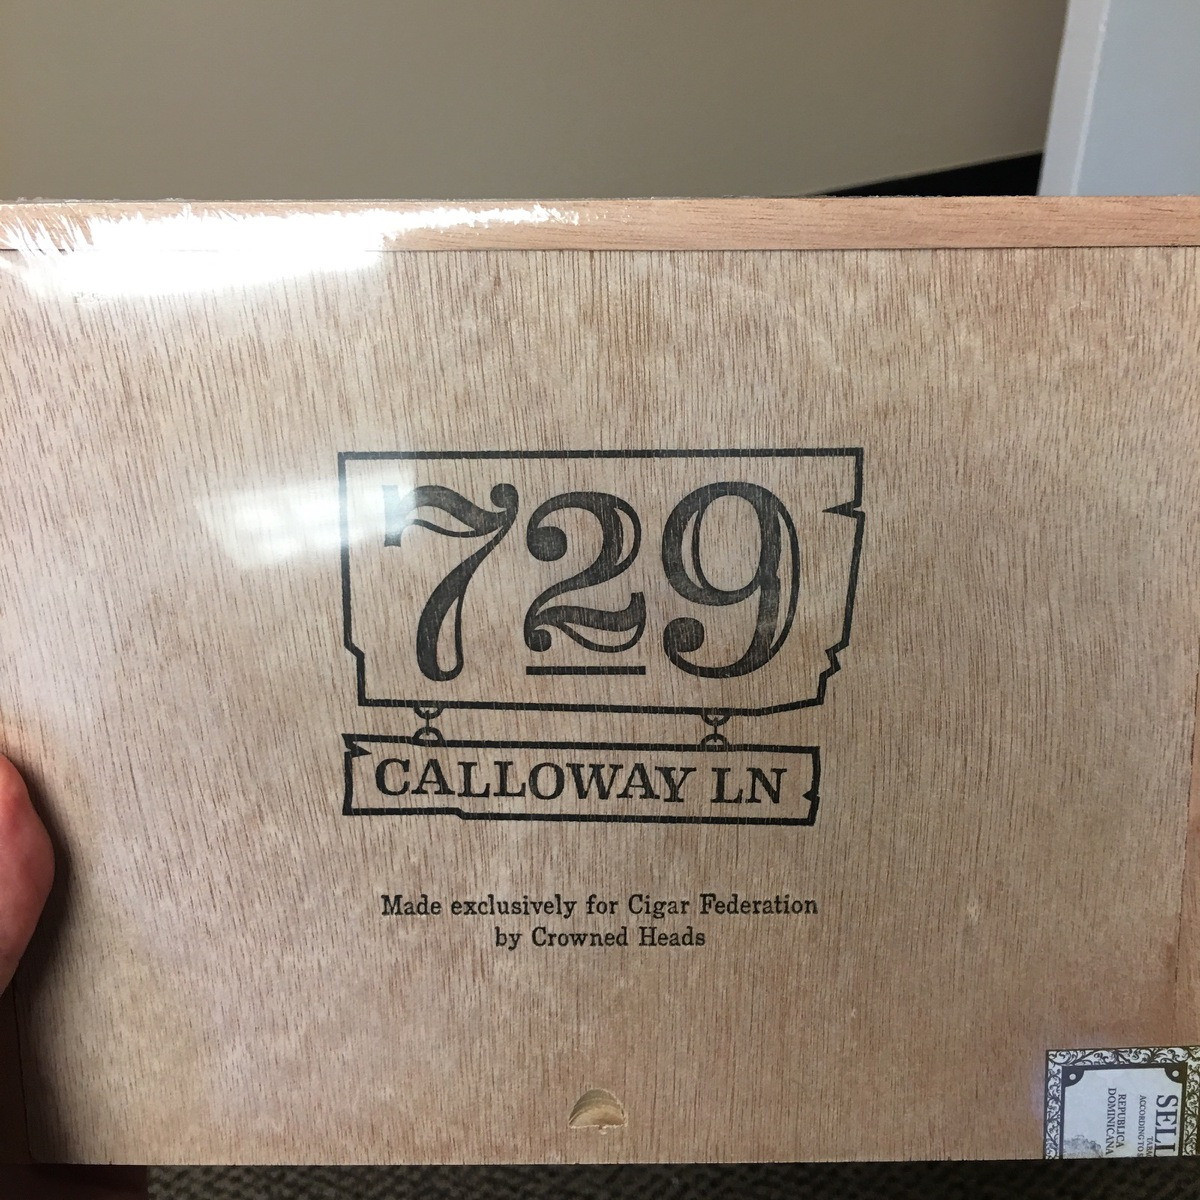 Cigar News: Crowned Heads Creates 729 Calloway Lane as Small Batch Exclusive for Cigar Federation